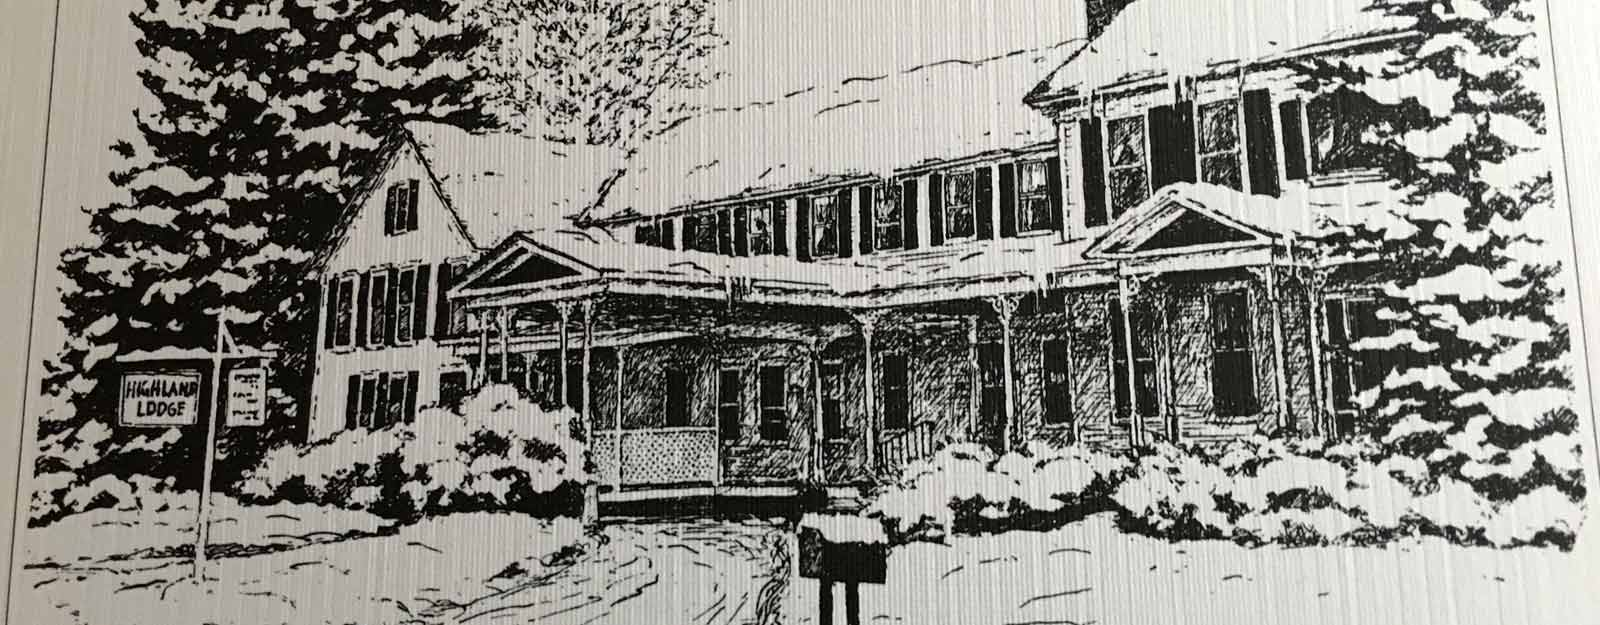 Ben Thurber's Rendering of a snowy Lodge1982